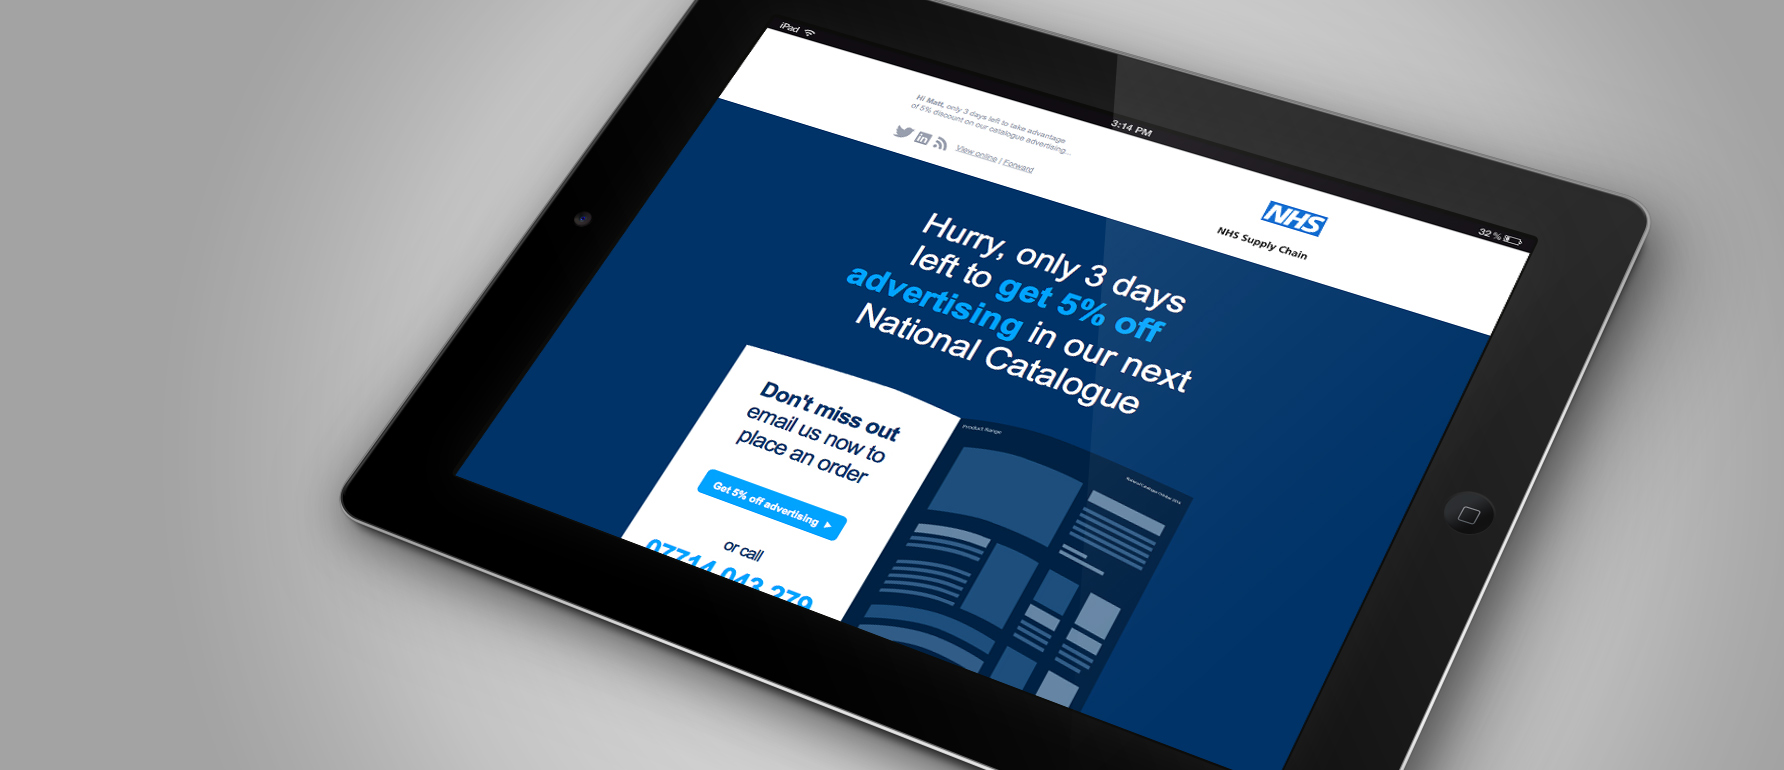 Email marketing design example on iPad